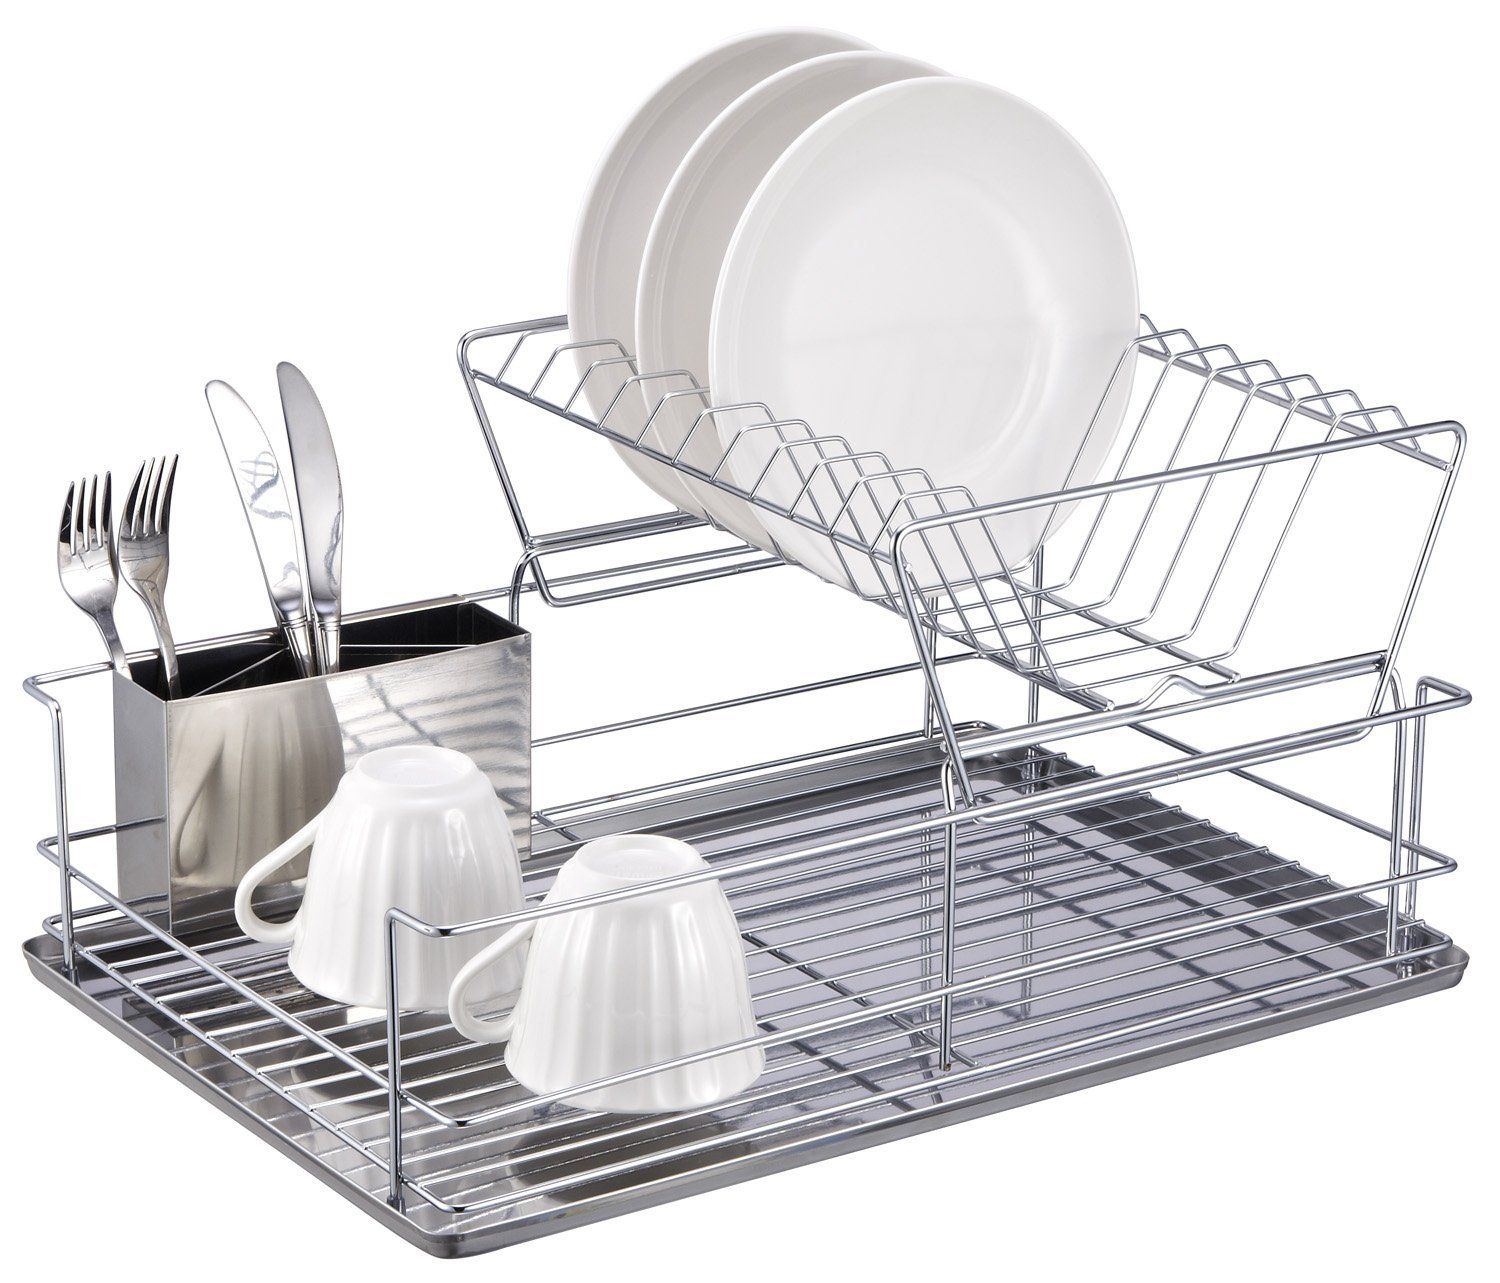 Amazon.com - Home Basics 2-Tier Dish Rack - Draining Dish Rack 17 ...